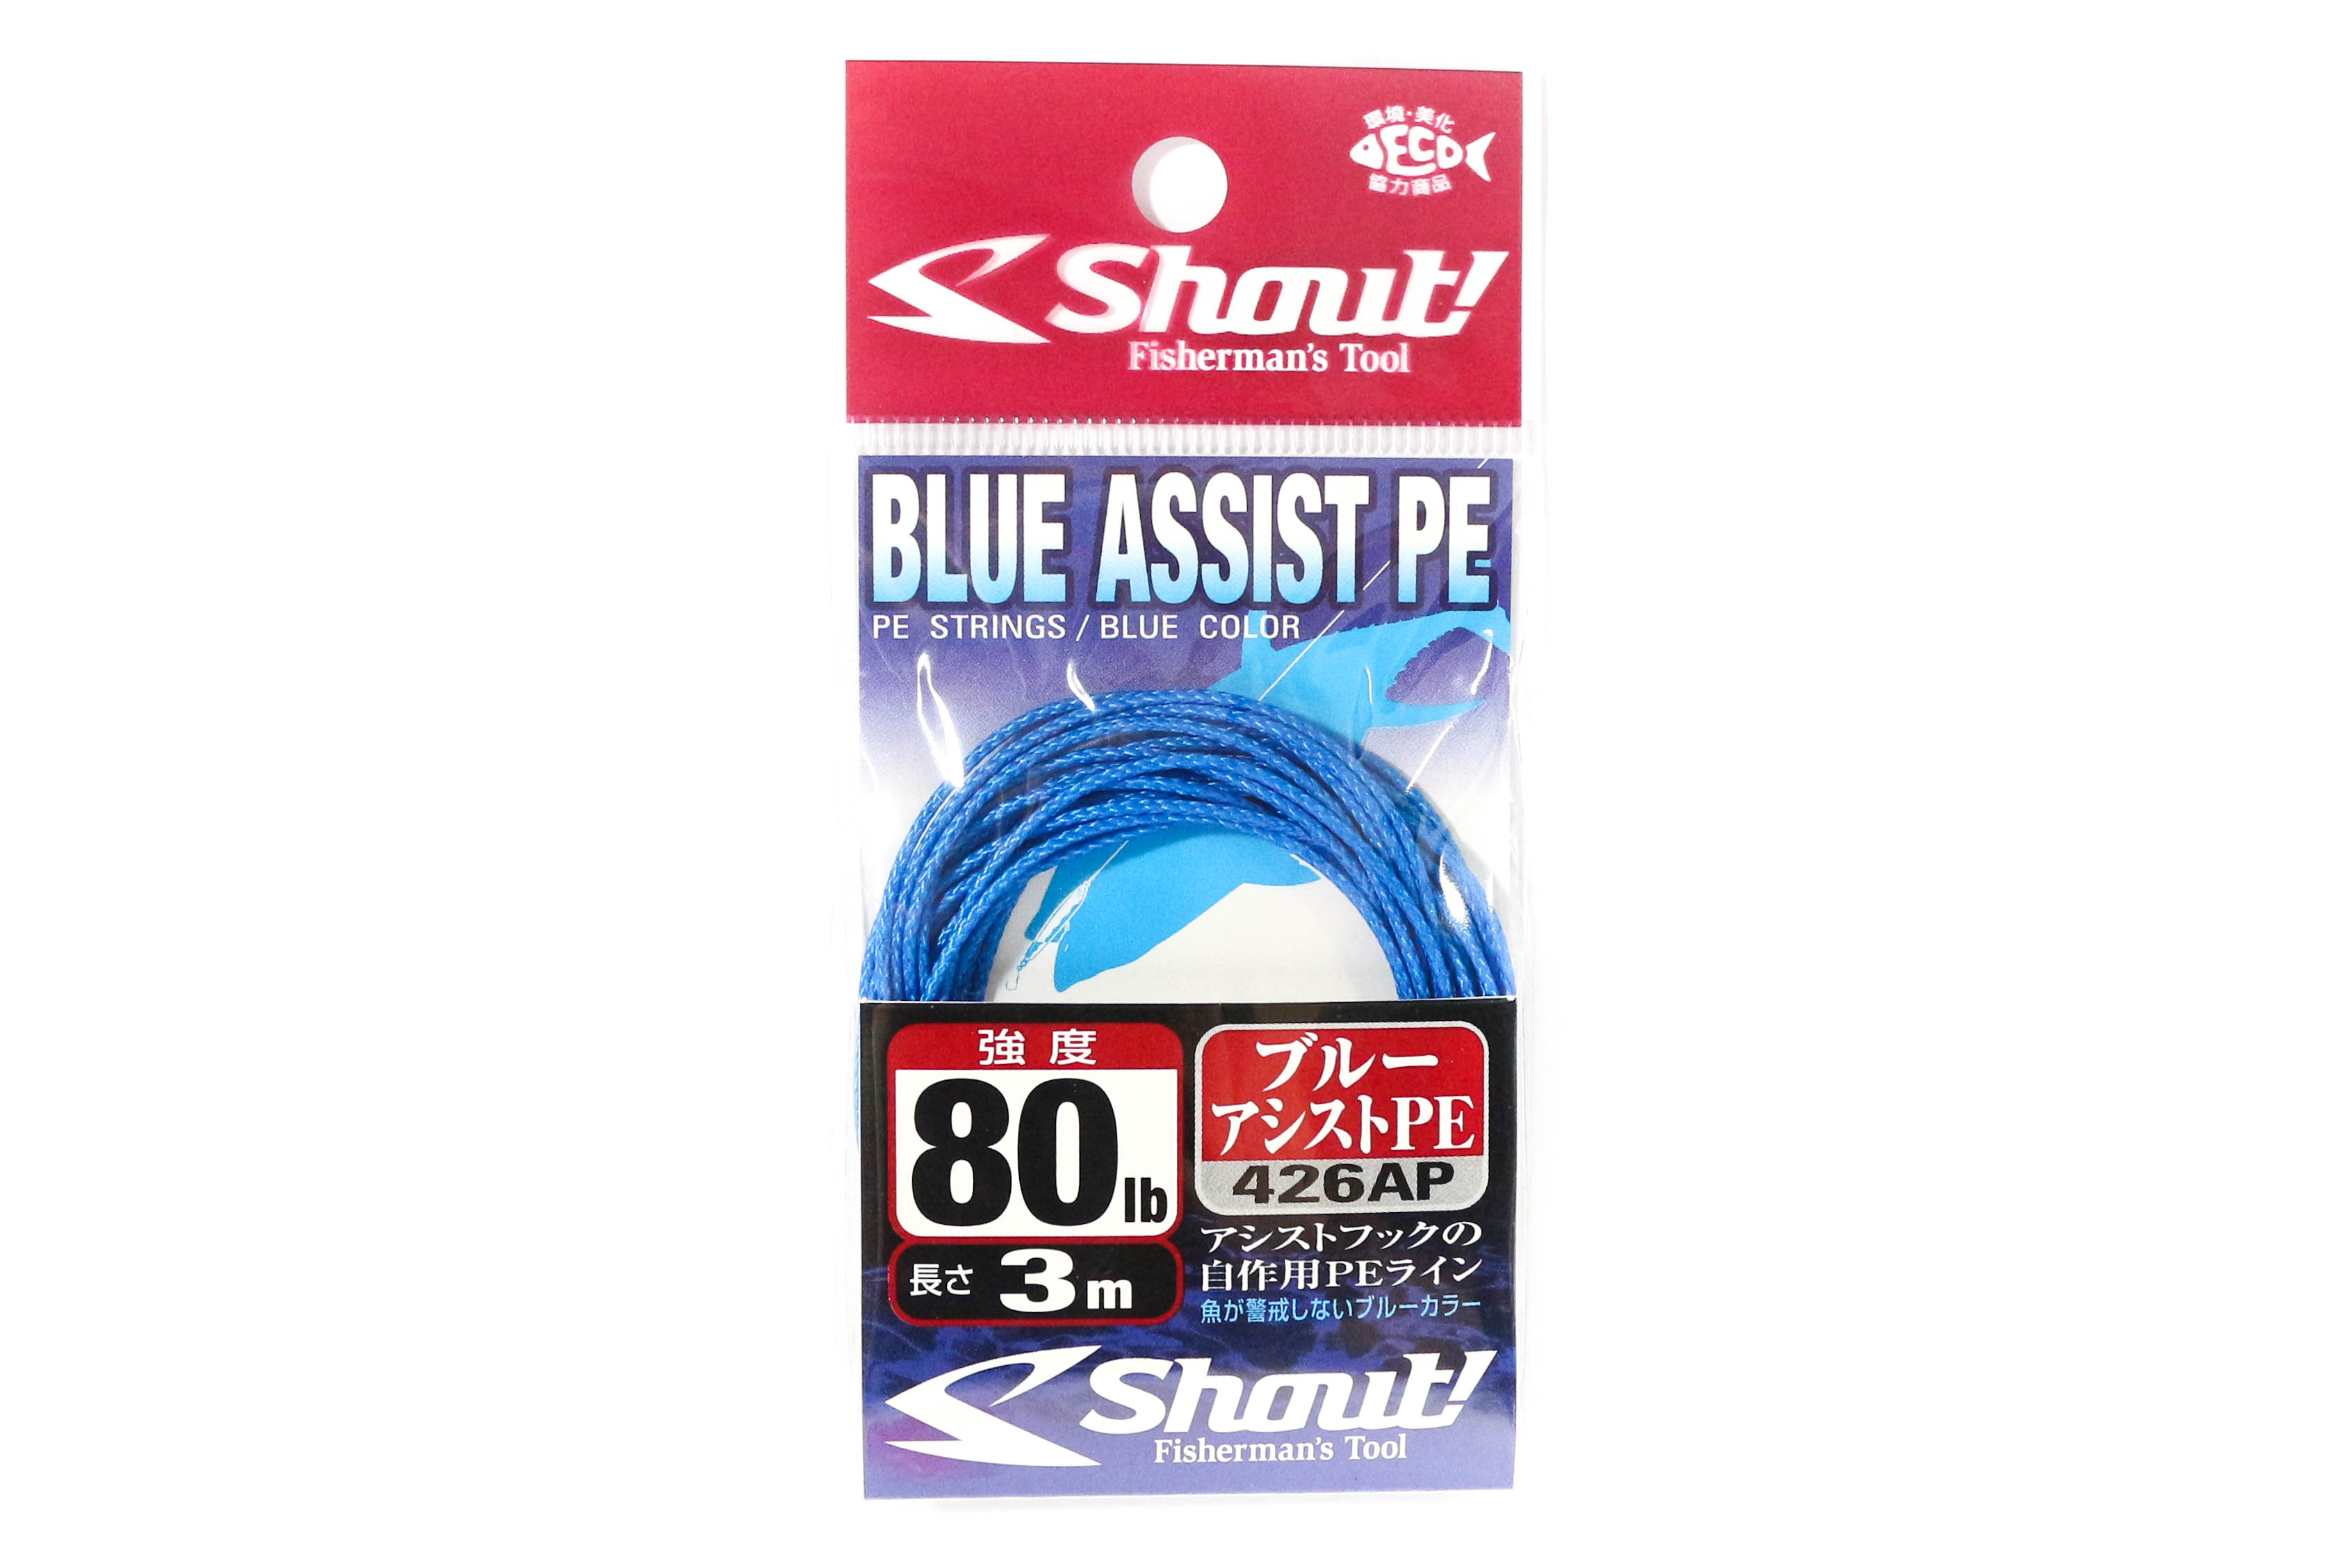 Shout 426-AP Blue Assist P.E Line Assist Rope Inner Core 3 meters 80LB (4640)